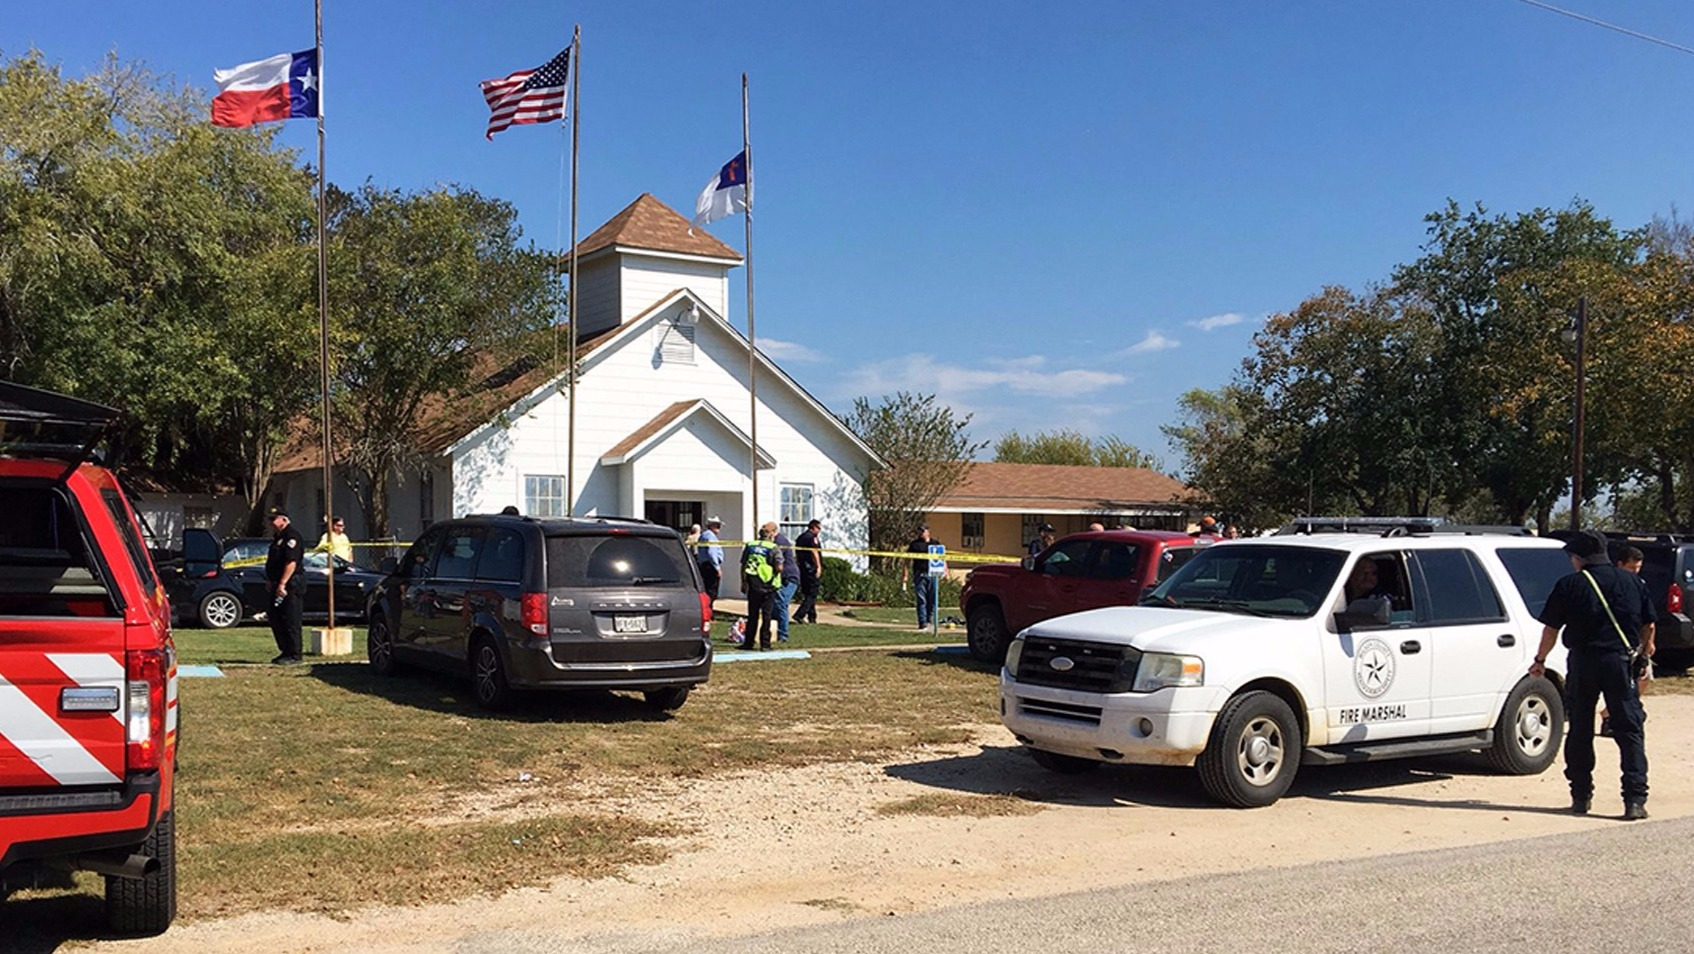 Texas church shooting: Facts minus speculation